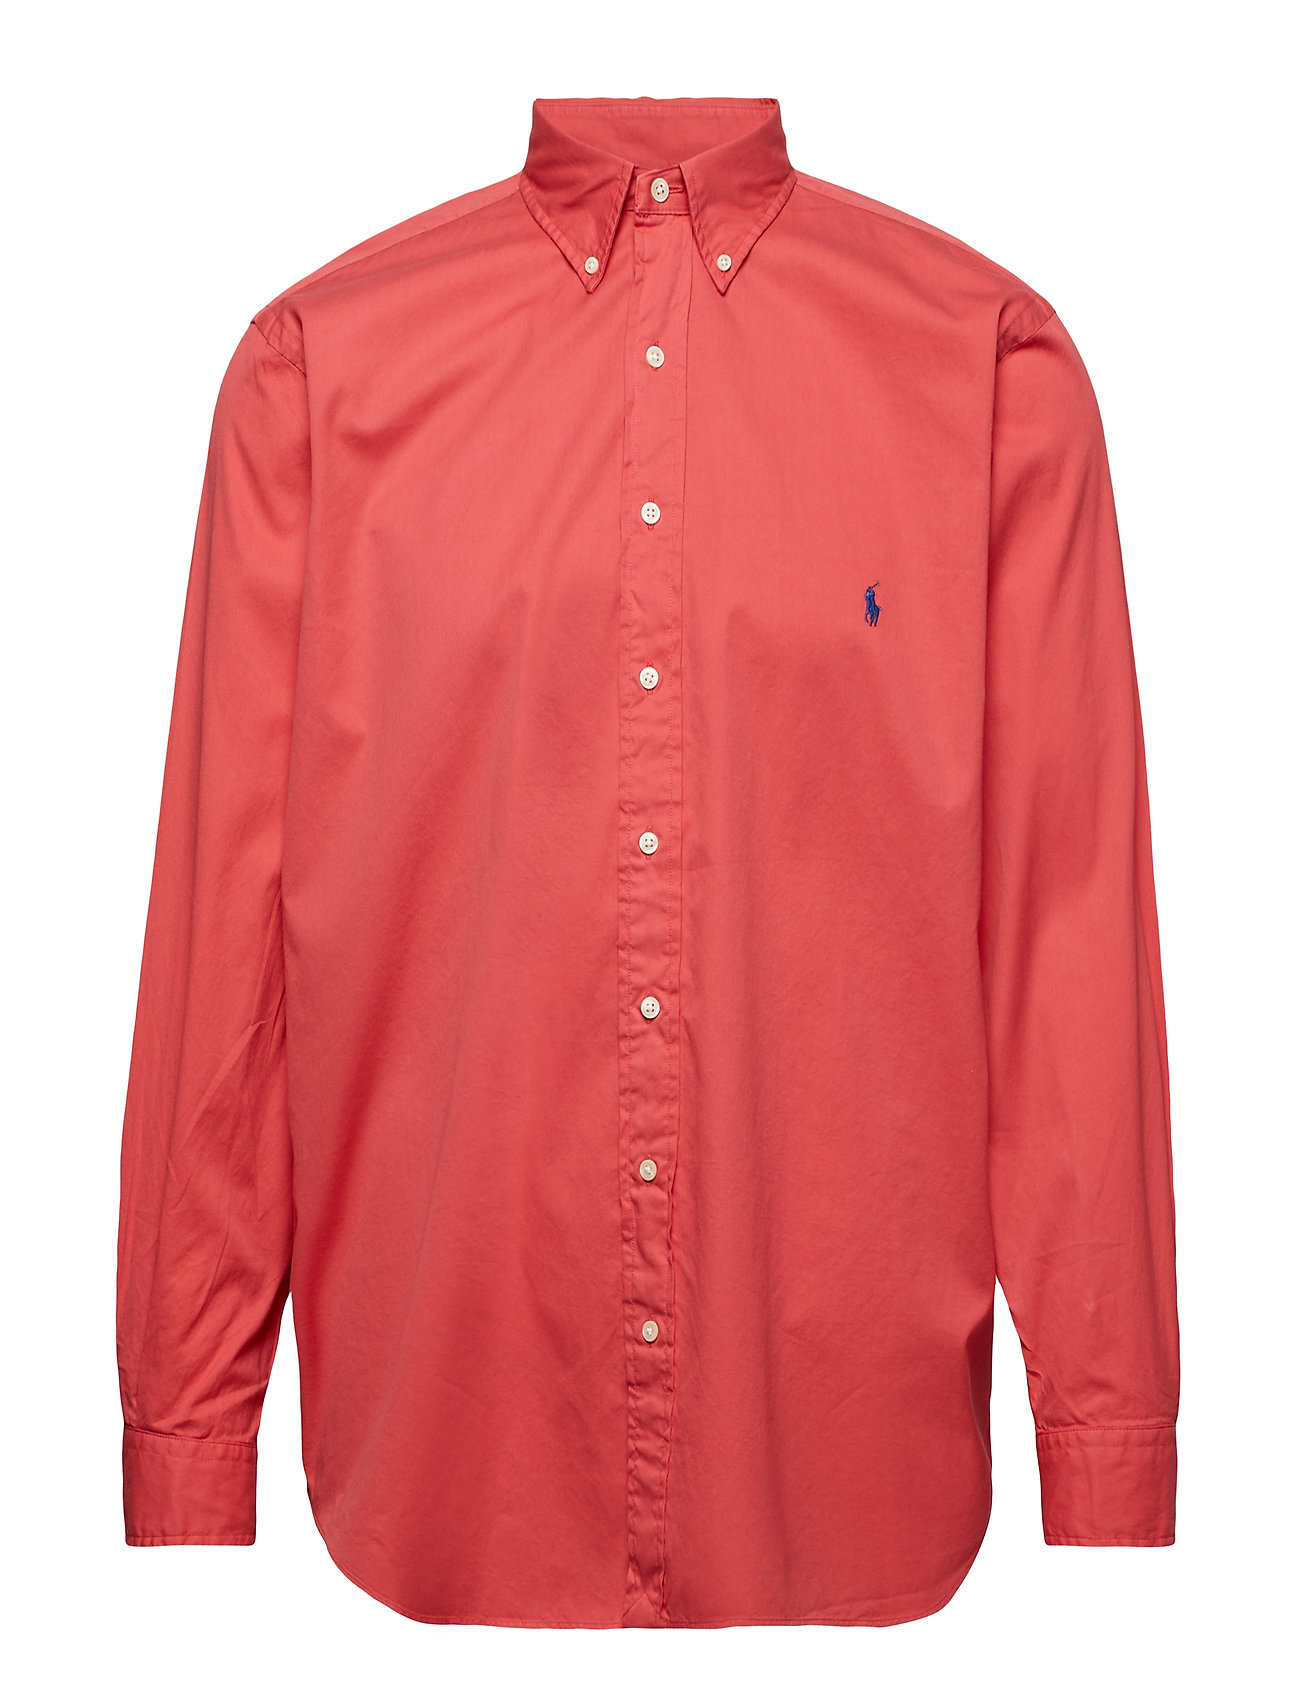 Polo Ralph Lauren Big & Tall Classic Fit Twill Shirt